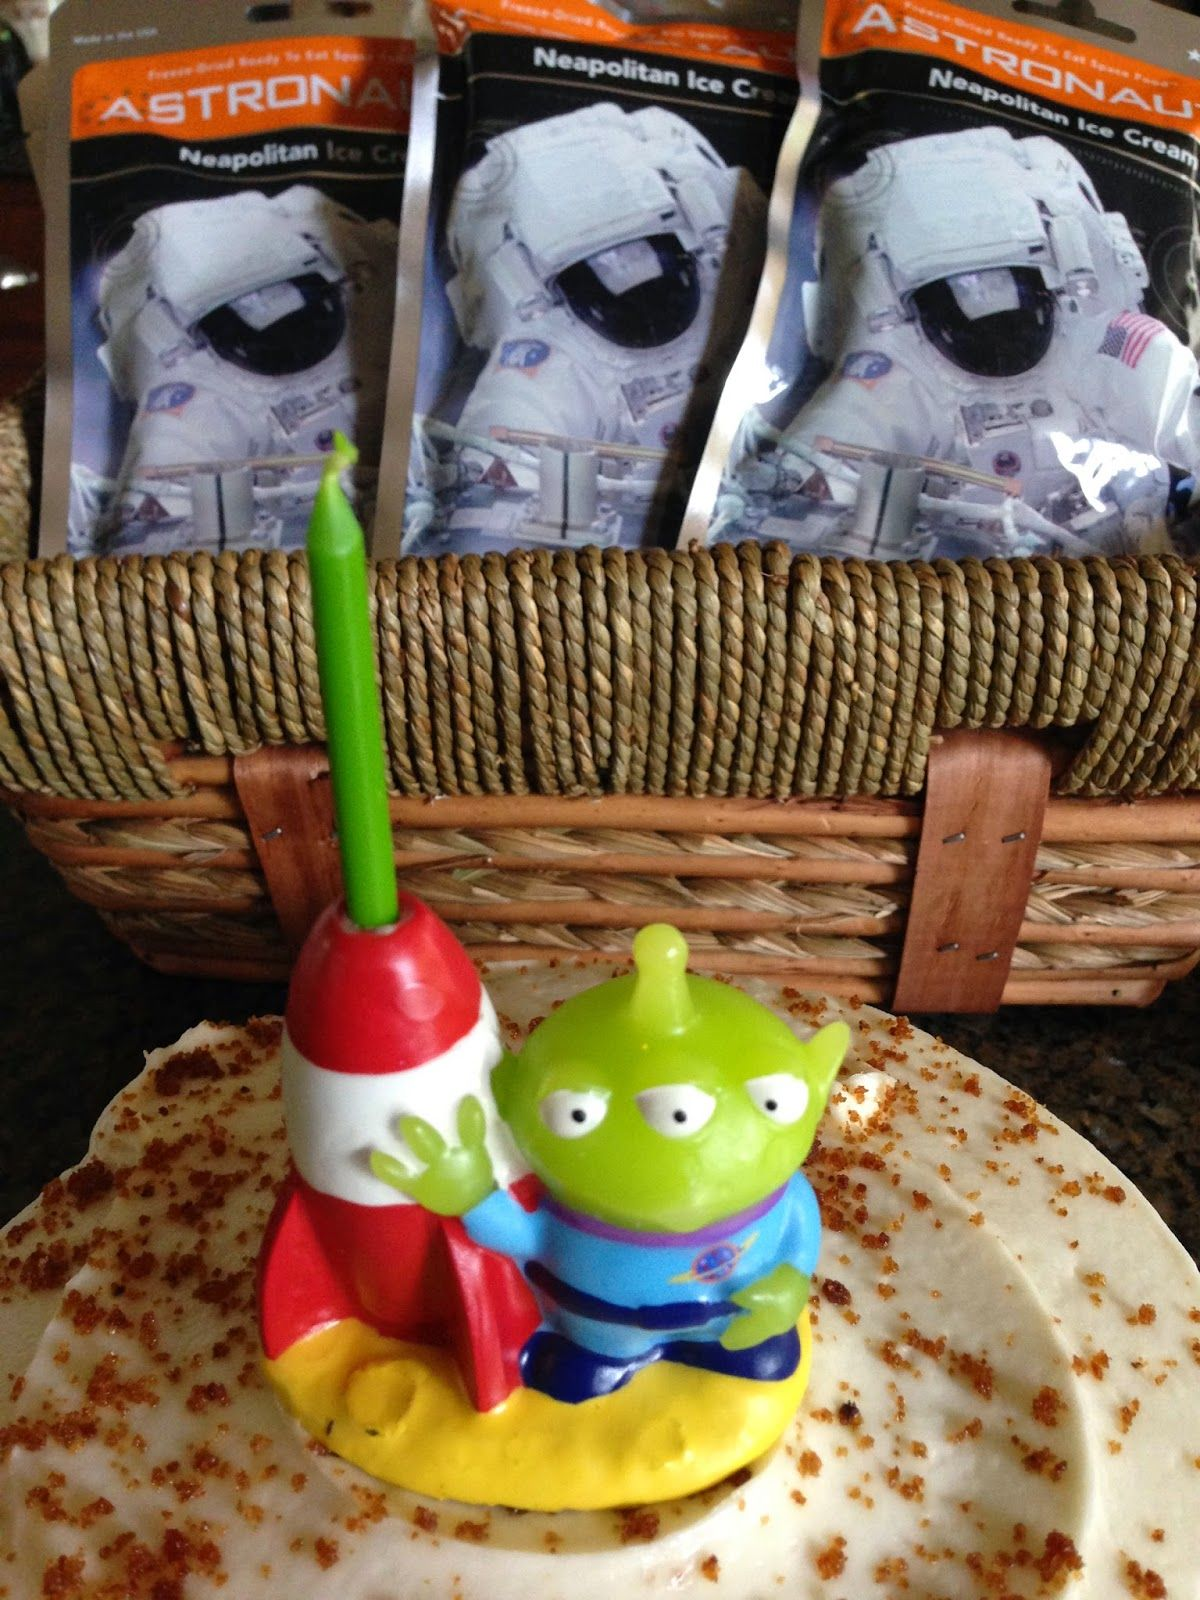 Recipe for Yum: * DIY: Create an Astronaut Photo Booth for Birthday Parties #Astronaut #BirthdayParty